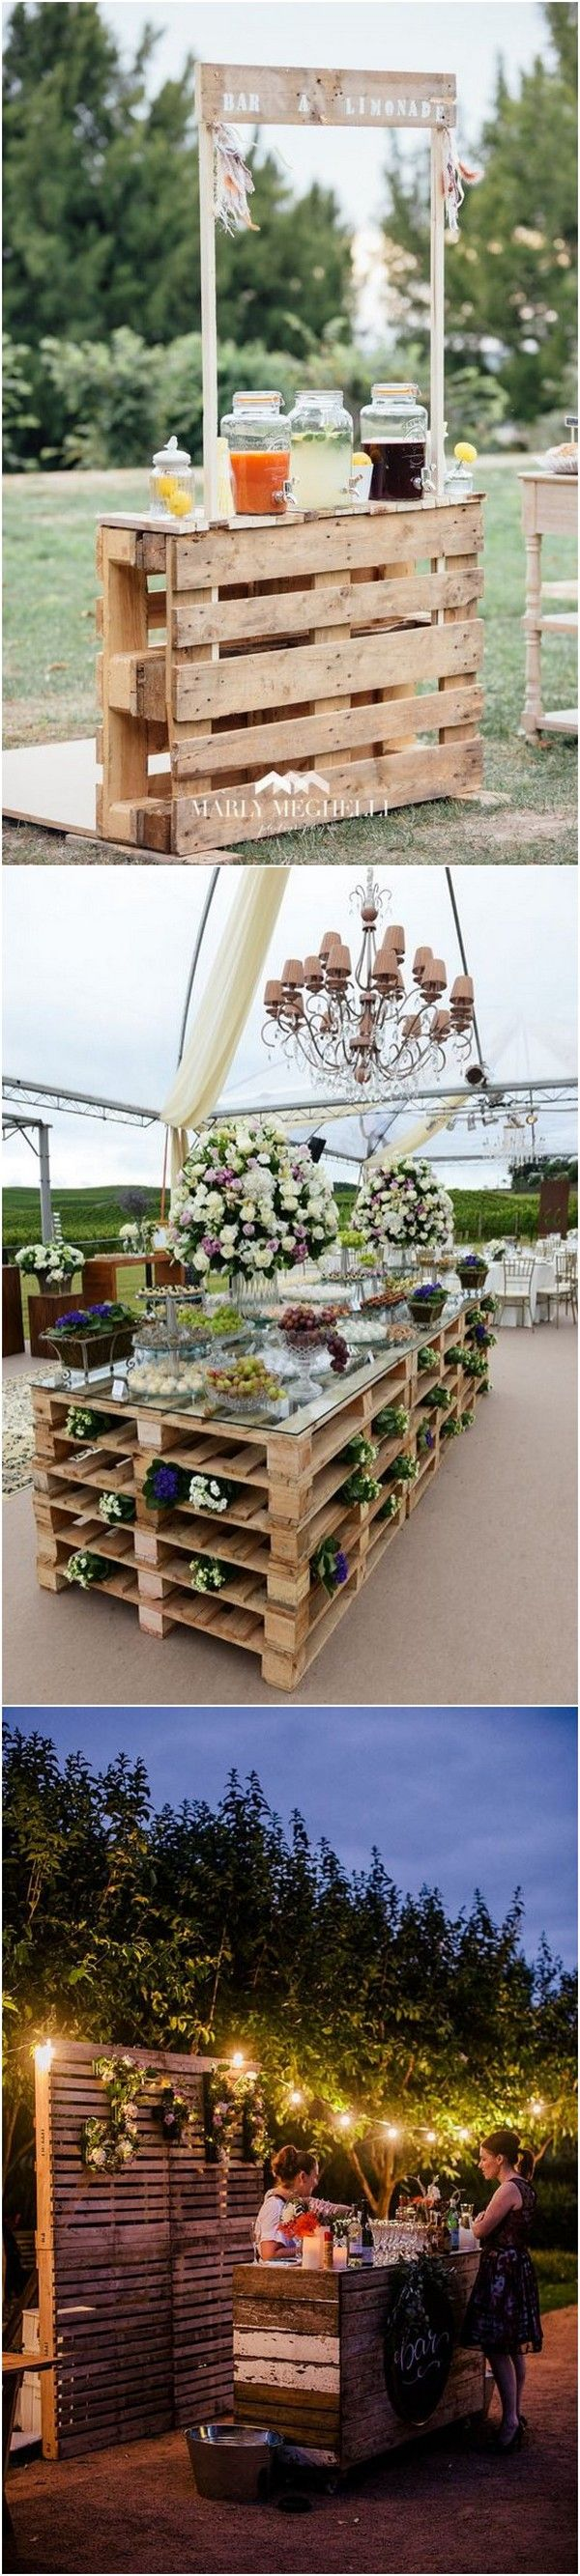 outdoor wedding ideas with wood pallets